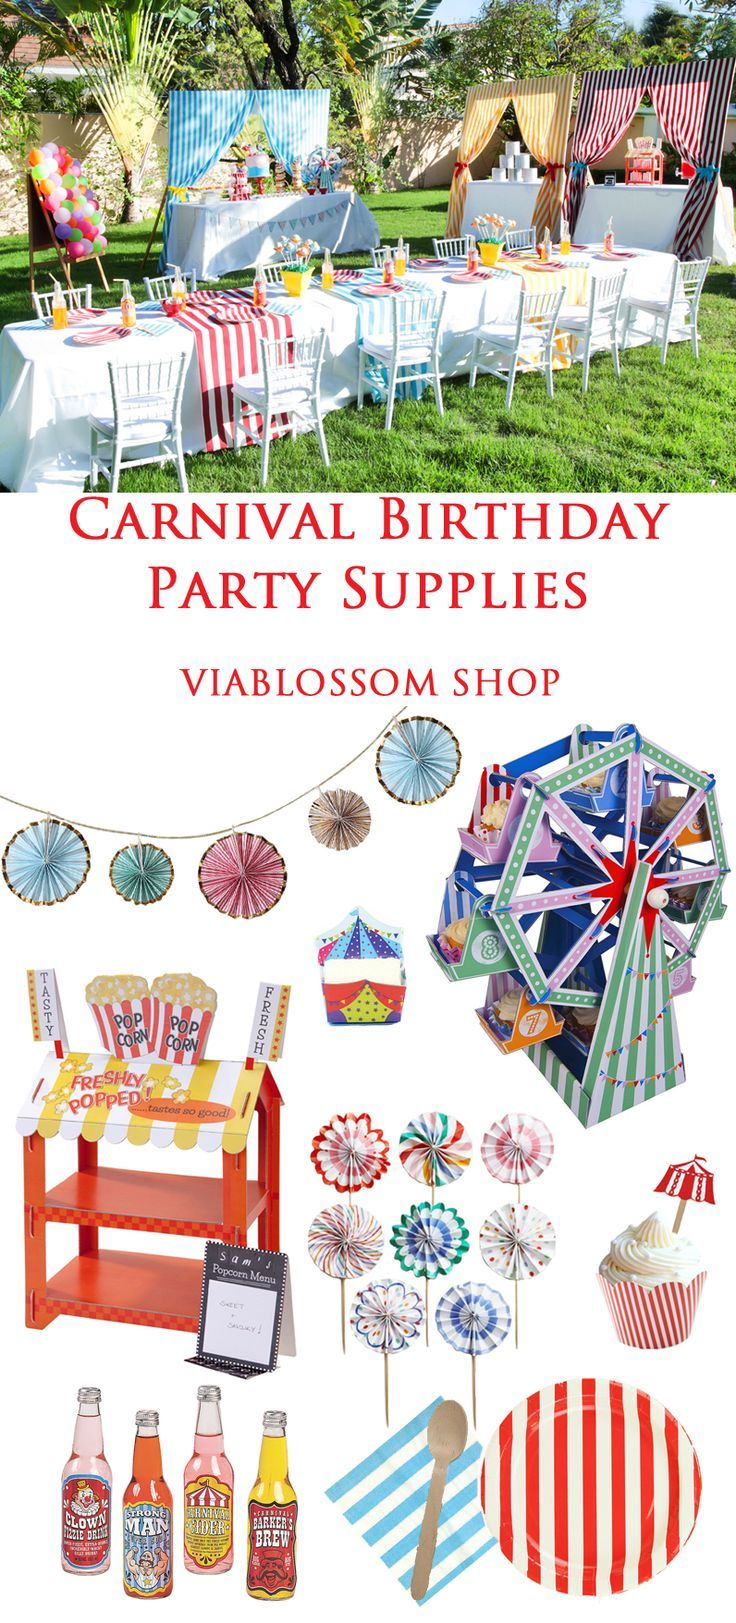 Carnival Birthday Party Supplies for an amazing Party at the Via Blossom Blog!